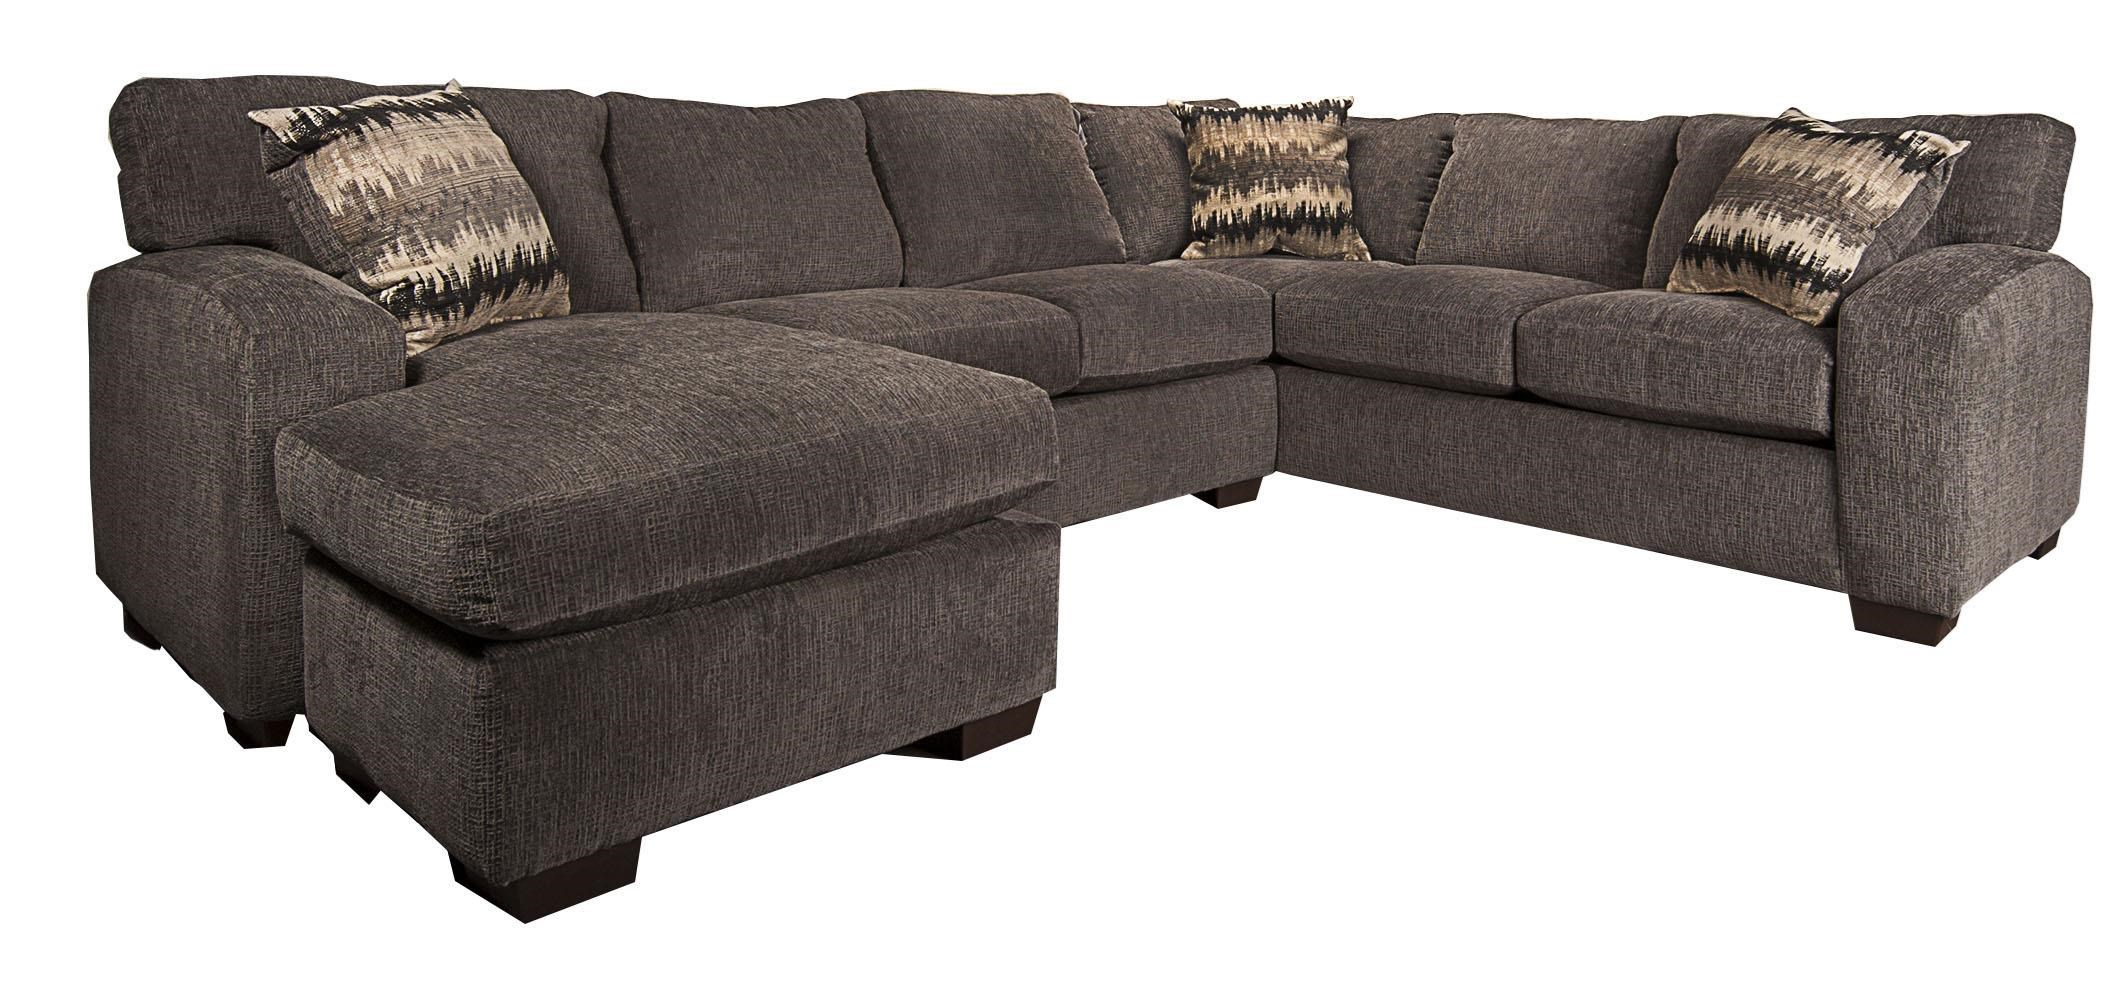 Cyndel 2 piece sectional morris home sectional sofas Morris home furniture outlet